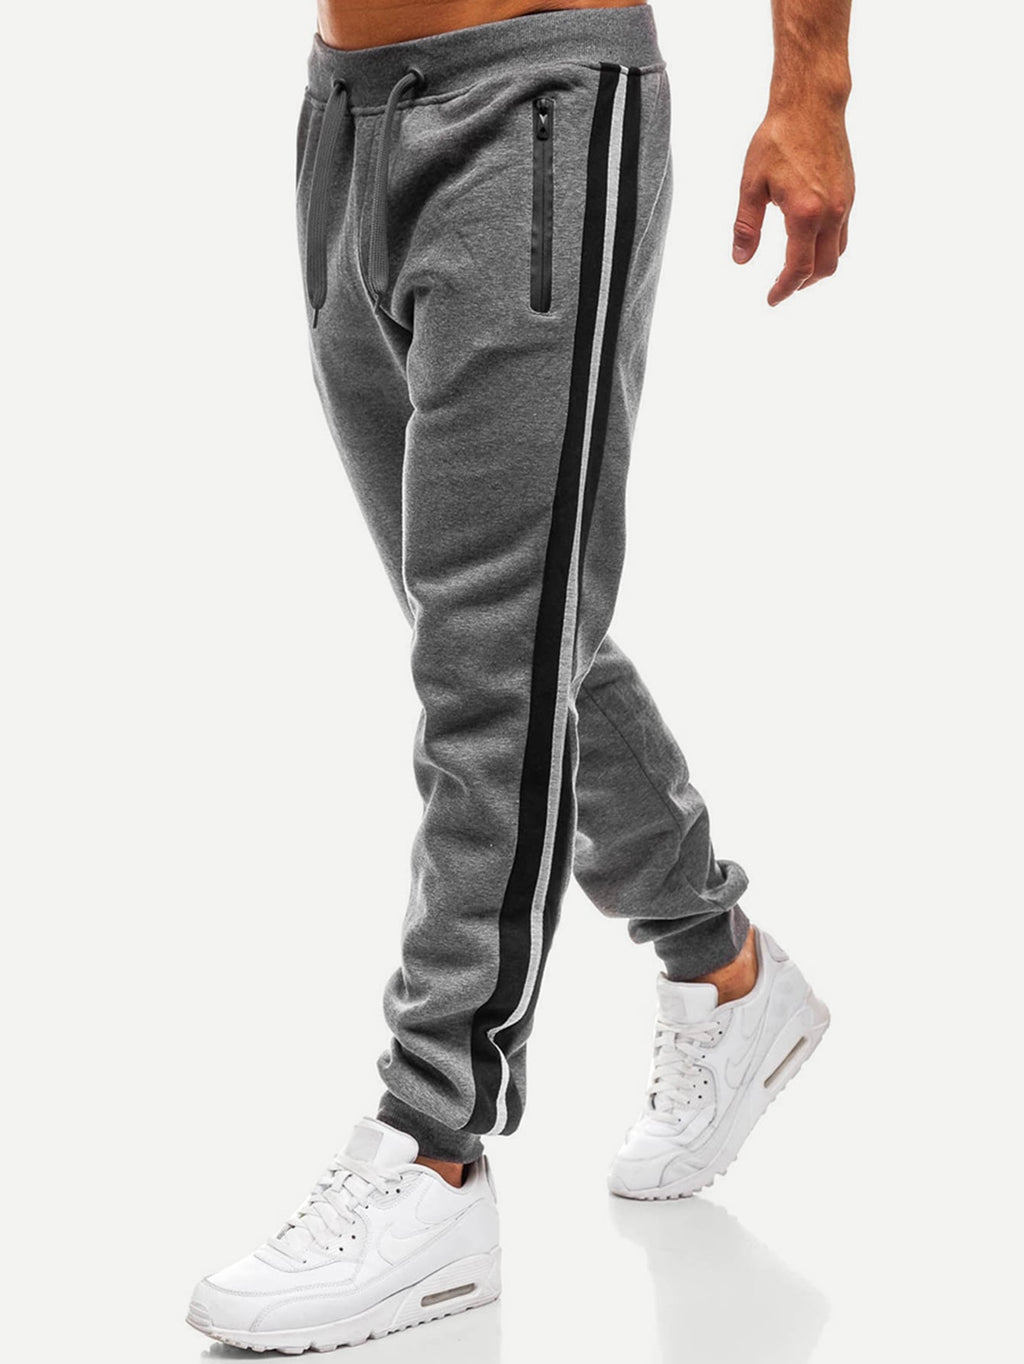 Men's Activewear - Cut And Sew Side Drawstring Waist Pants